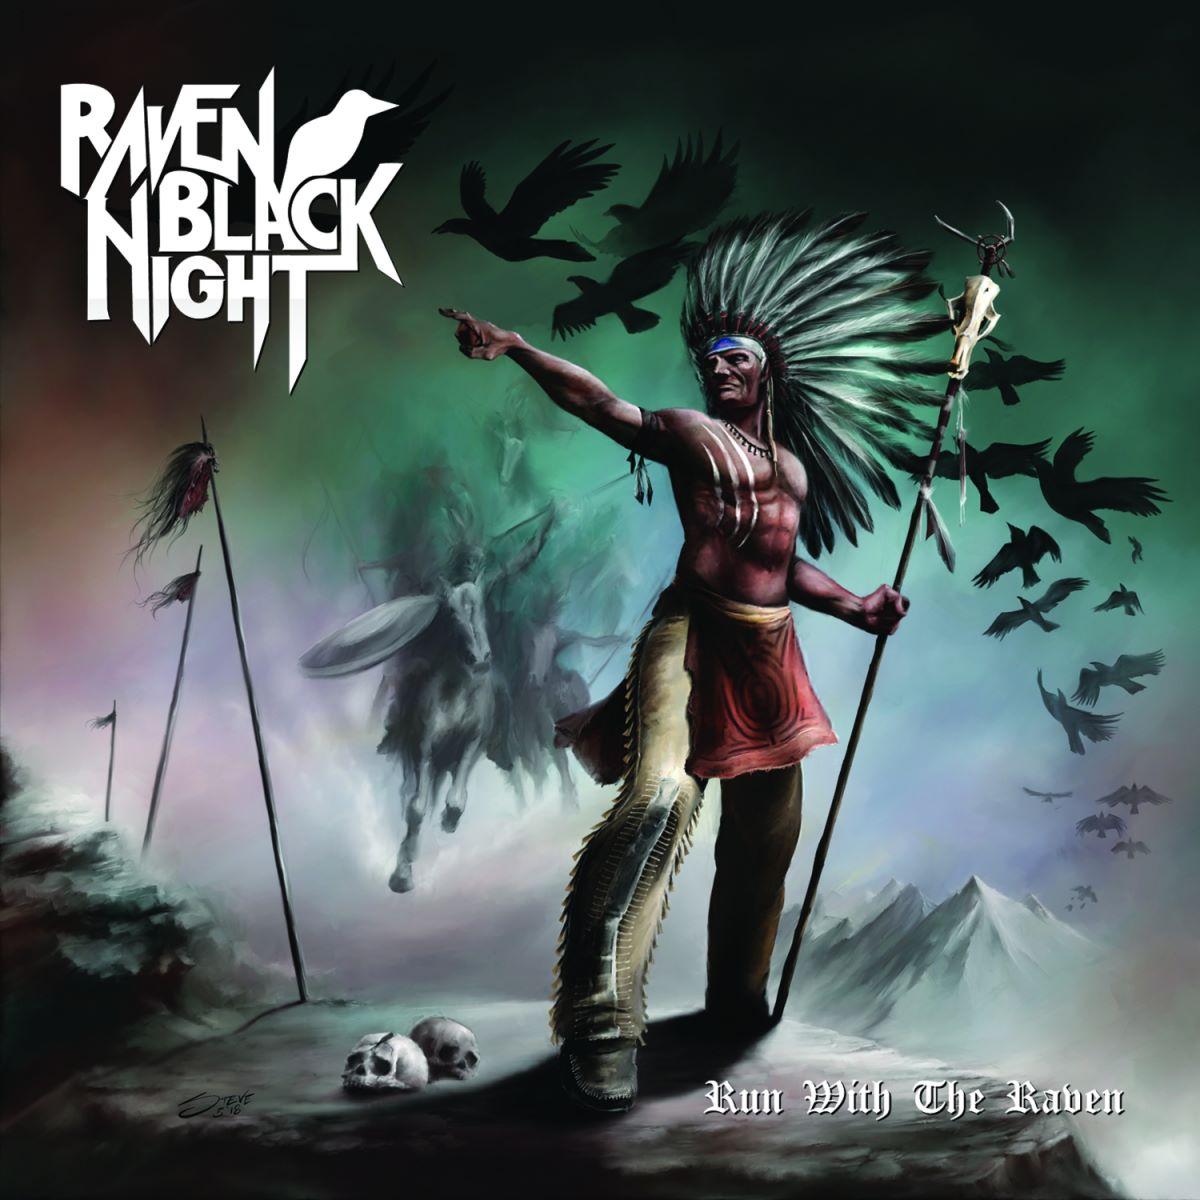 Raven Black Night - Run With The Raven - album cover